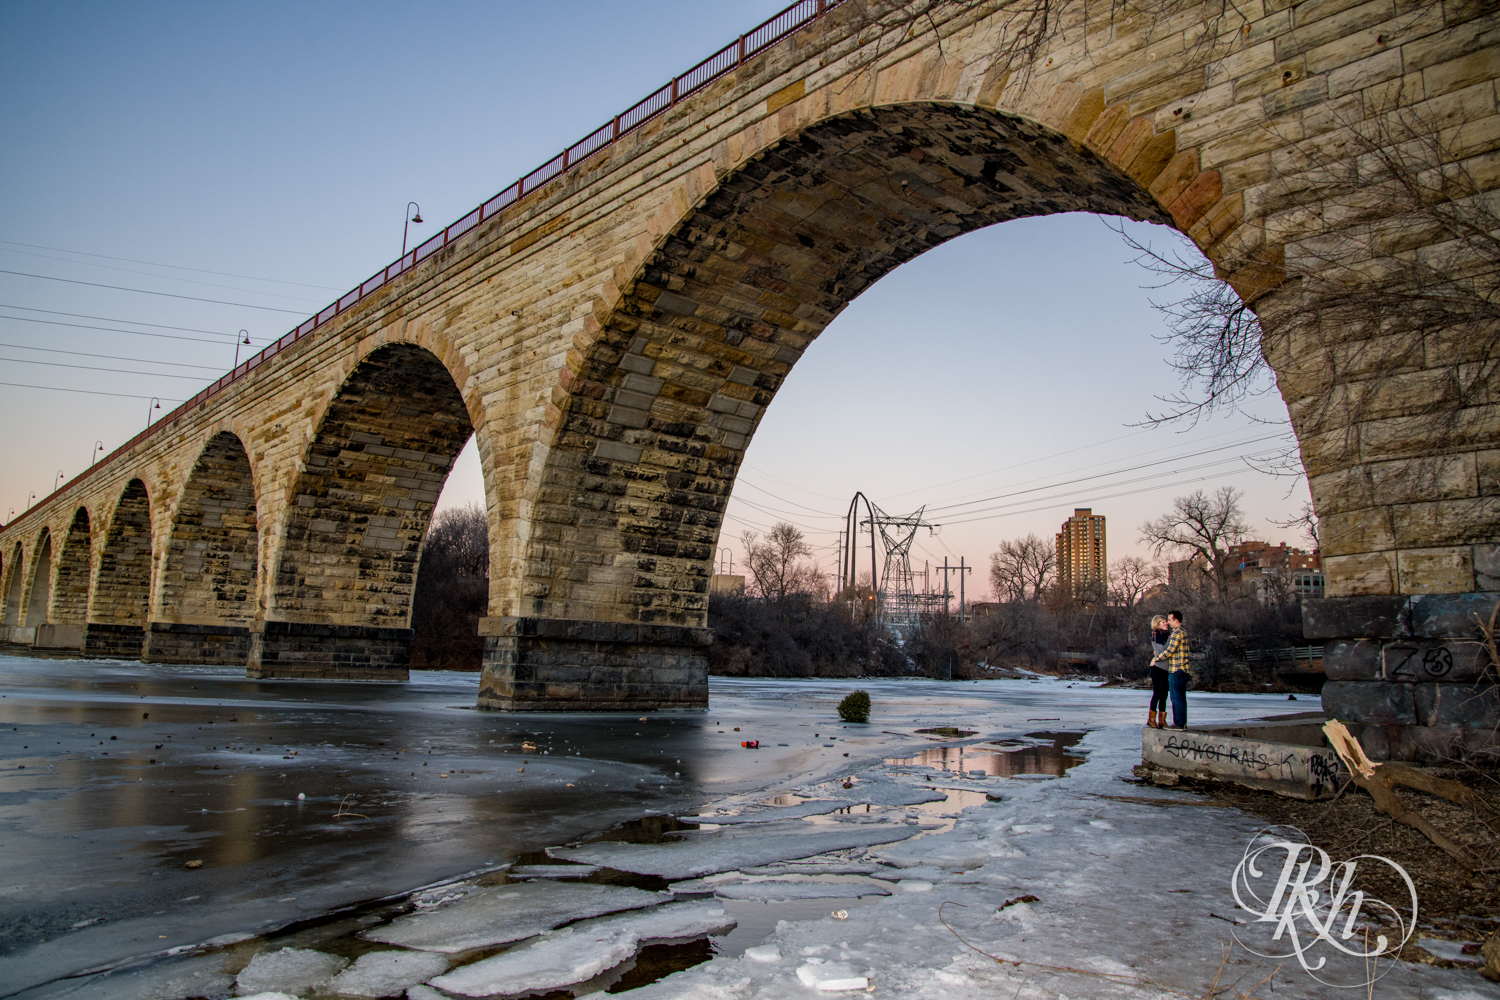 Kate & Kyle - Minnesota Sunrise Engagement Photography - Stone Arch Bridge - RKH Images (12 of 18).jpg